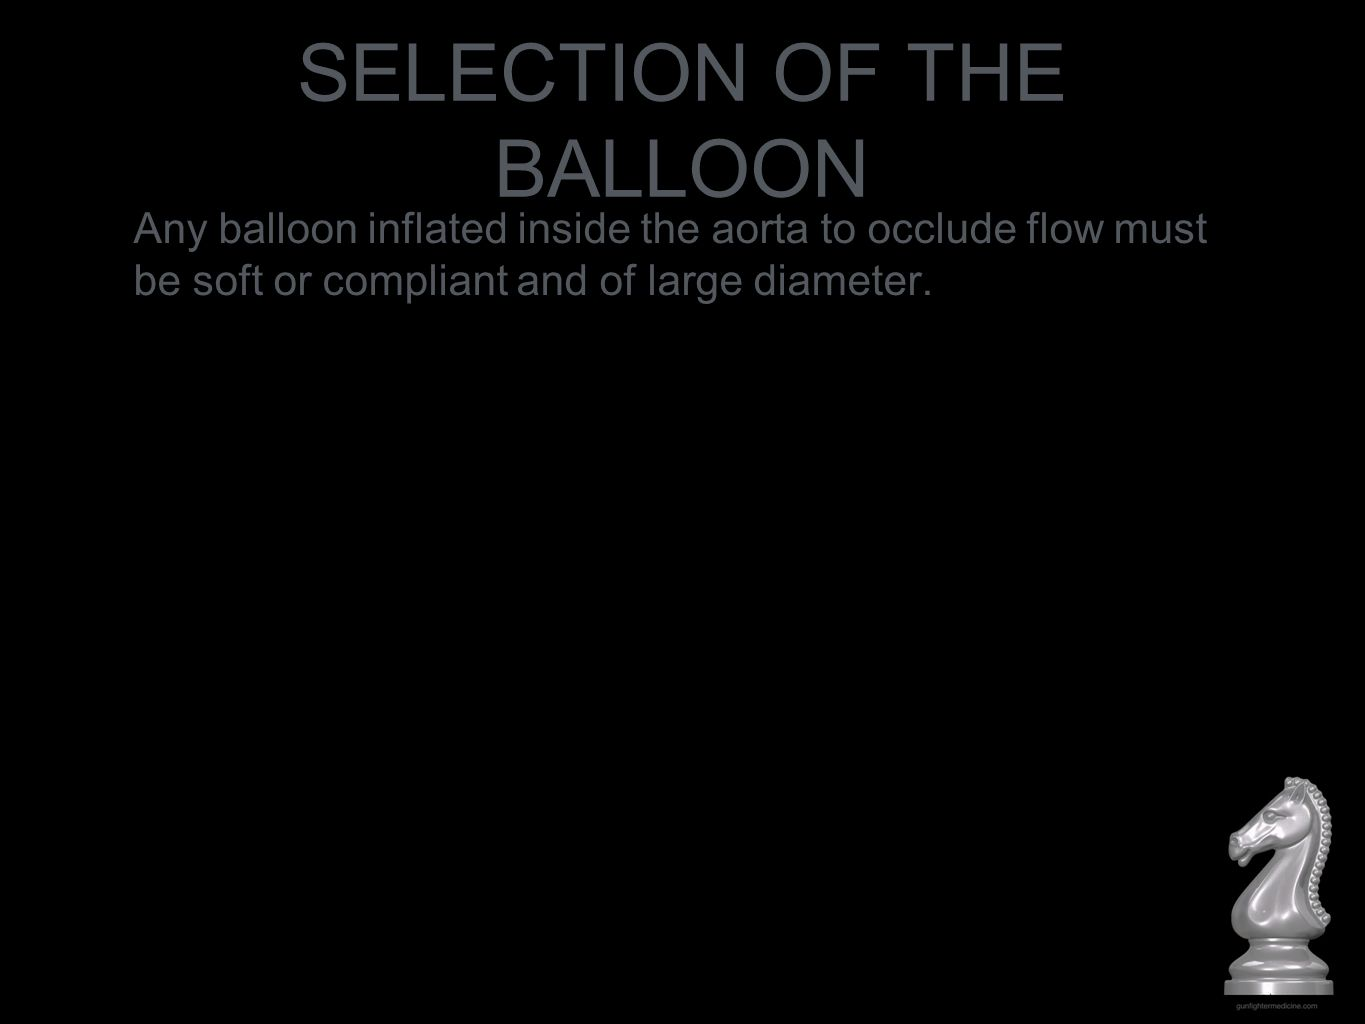 SELECTION OF THE BALLOON